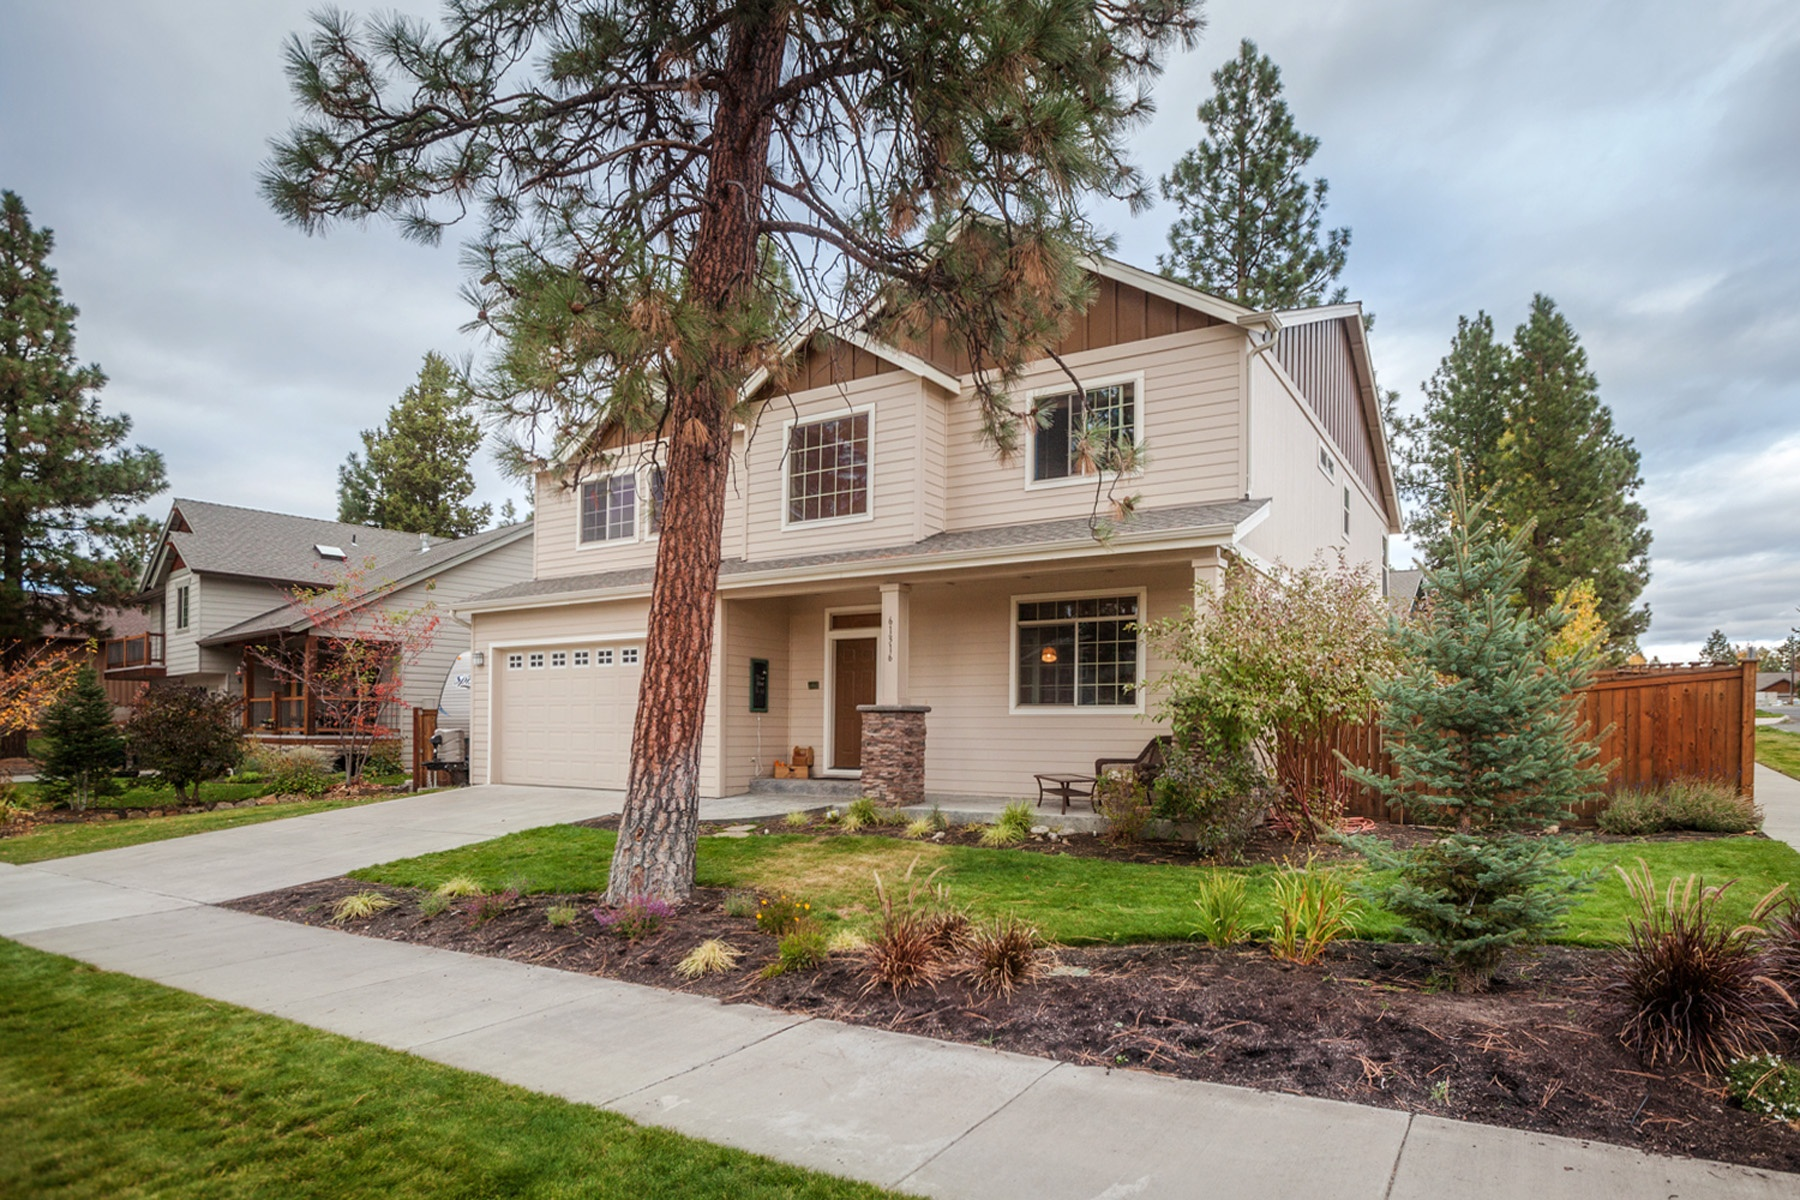 Single Family Home for Sale at Mountain View near Deschutes River 61316 Brianne Pl Bend, Oregon 97702 United States